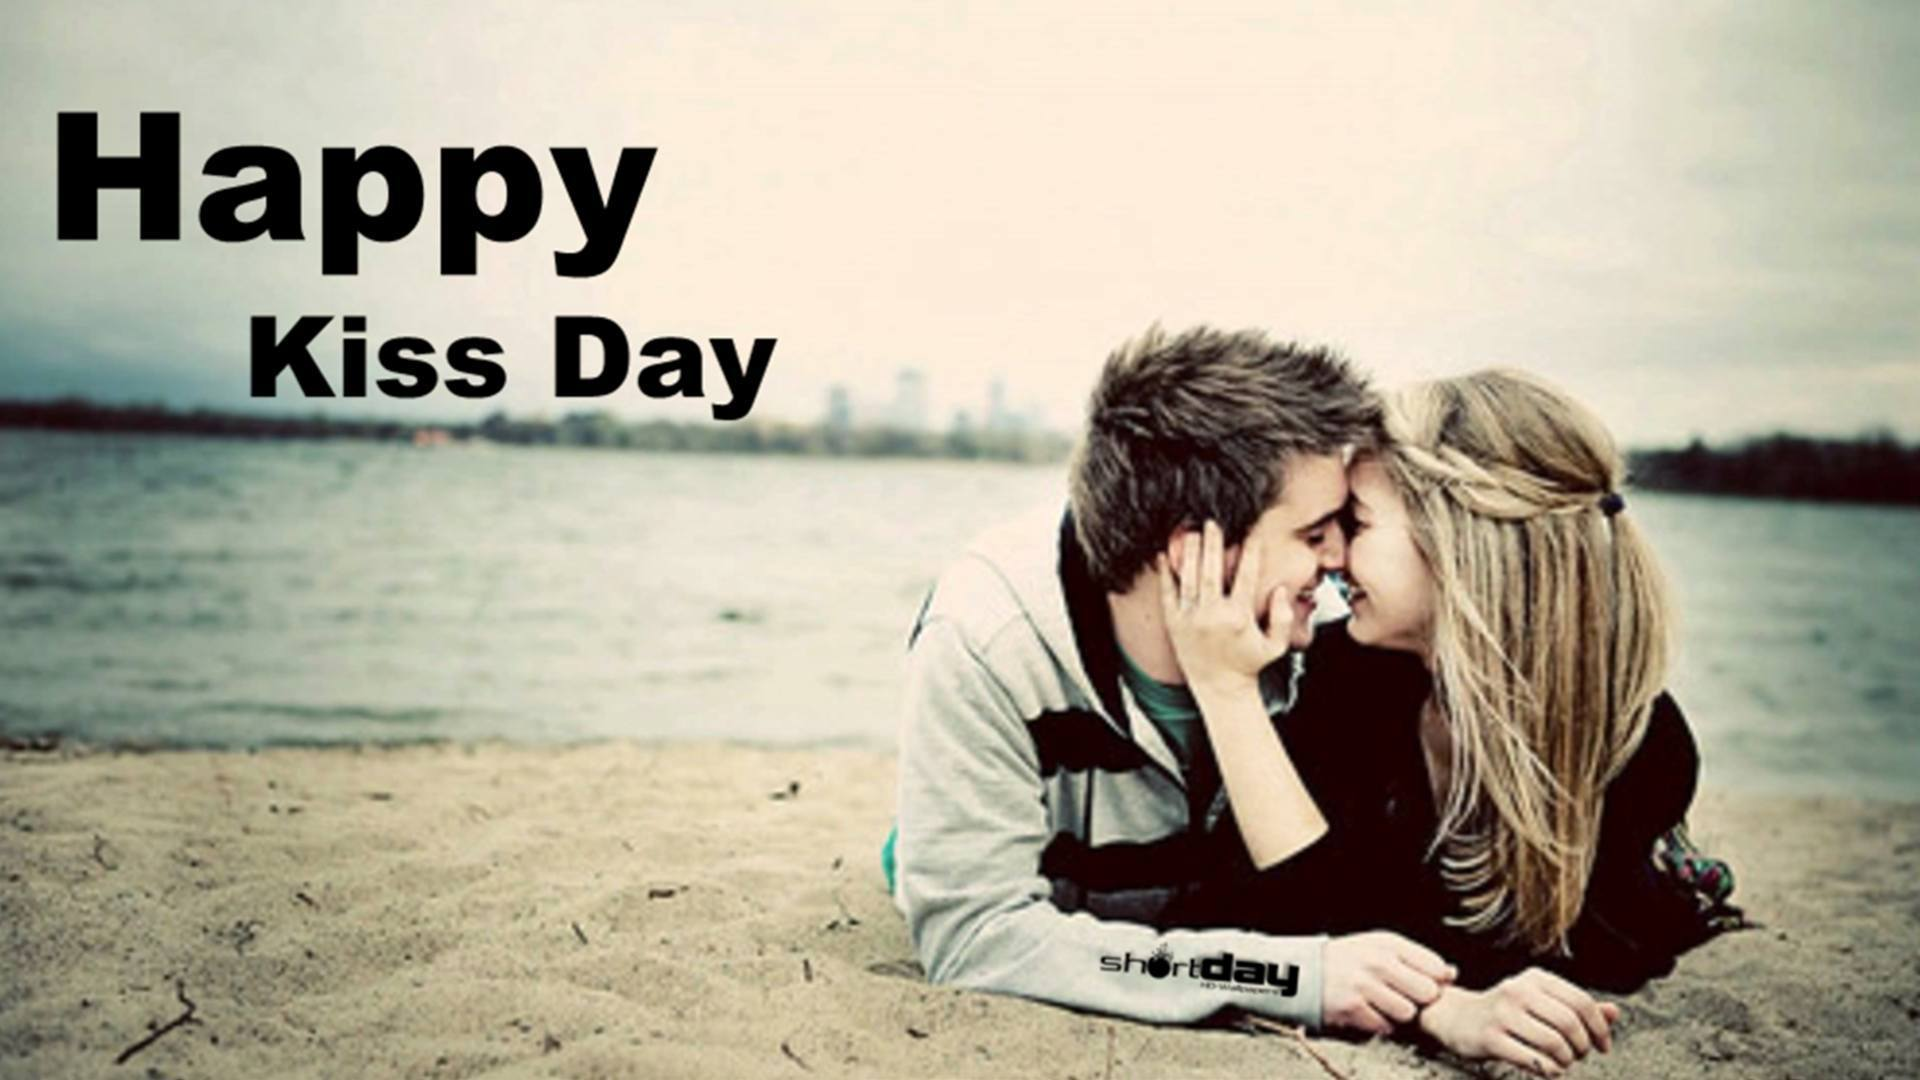 Romantic Message For Kiss Day